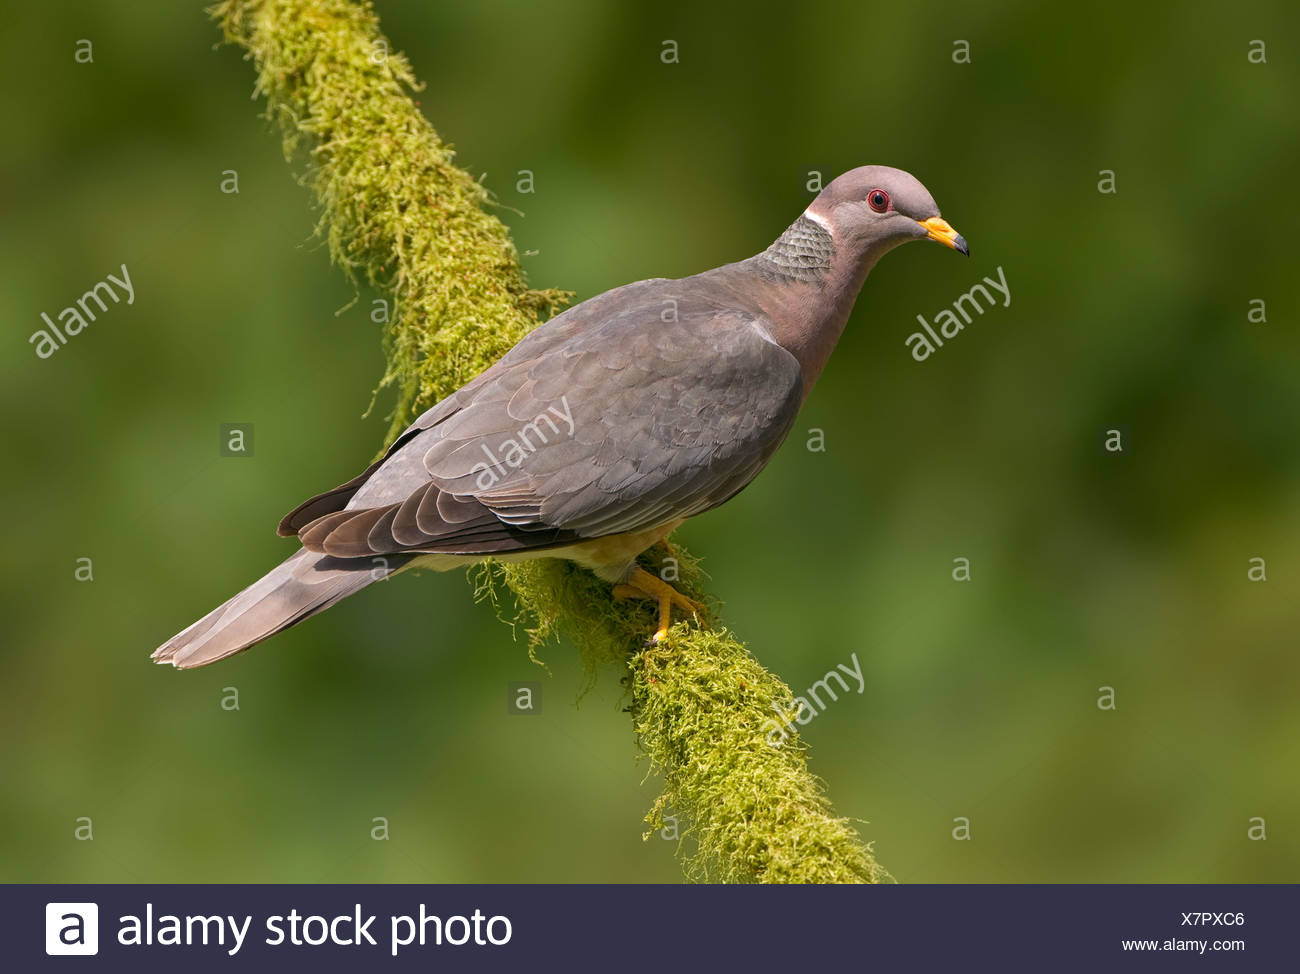 Band-tailed Pigeon (Patagioenas fasciata) on perch Victoria BC, Canada - Stock Image